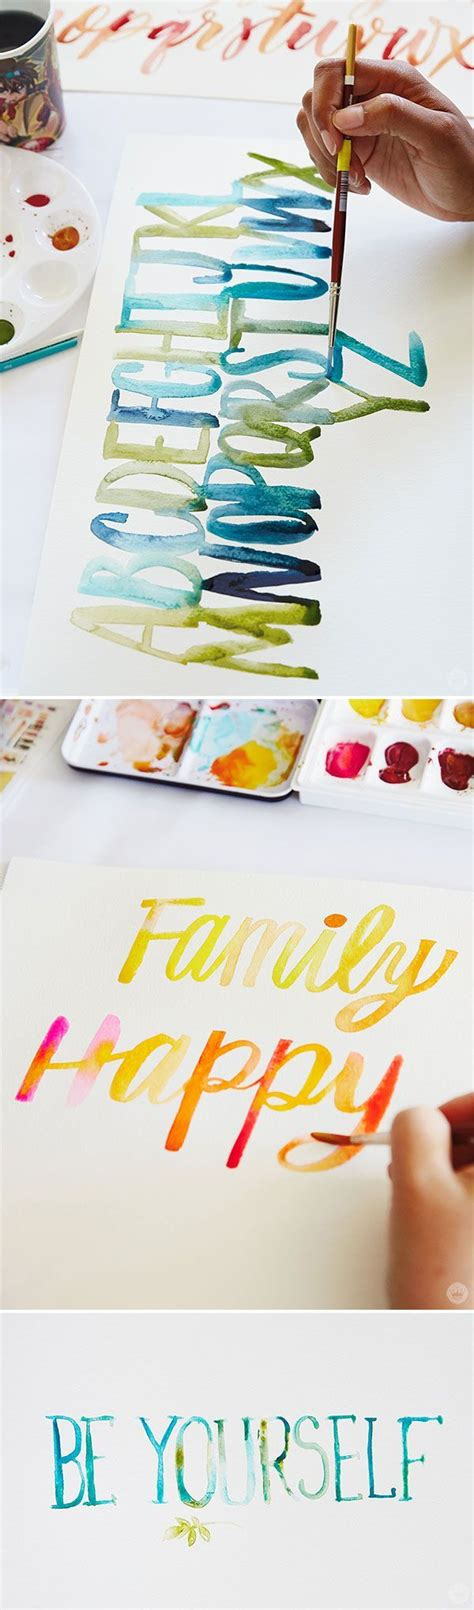 watercolor lettering tutorial watercolor lettering four techniques to try watercolor